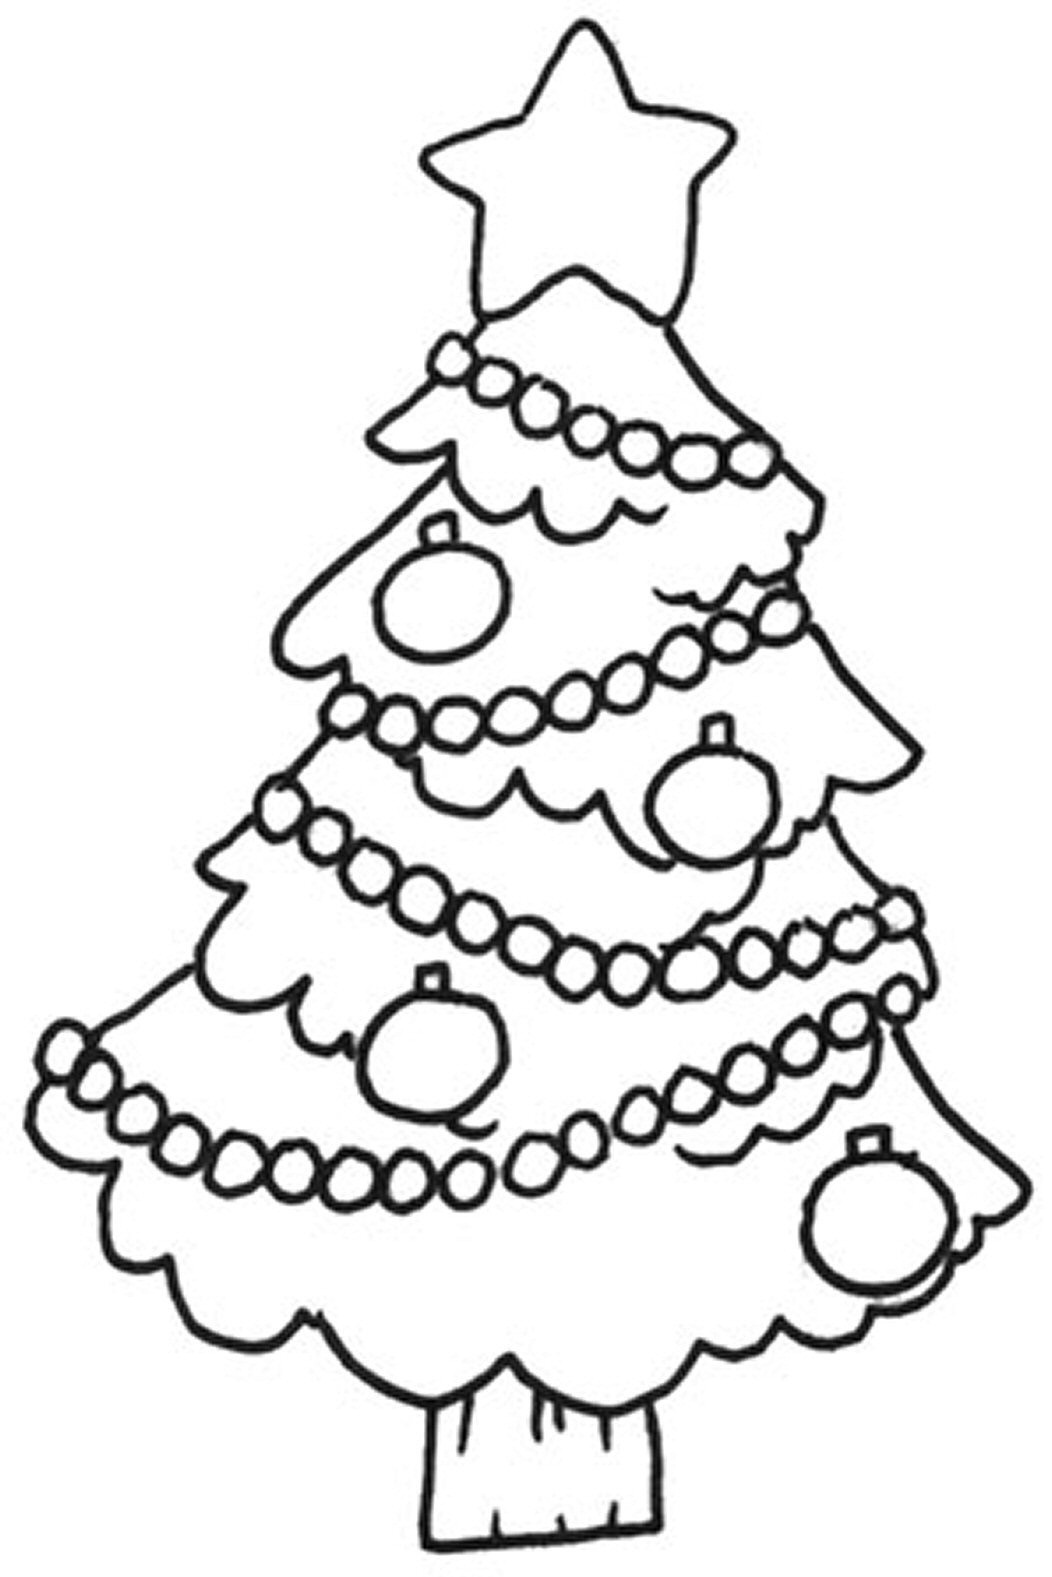 ho iday coloring pages - photo#41